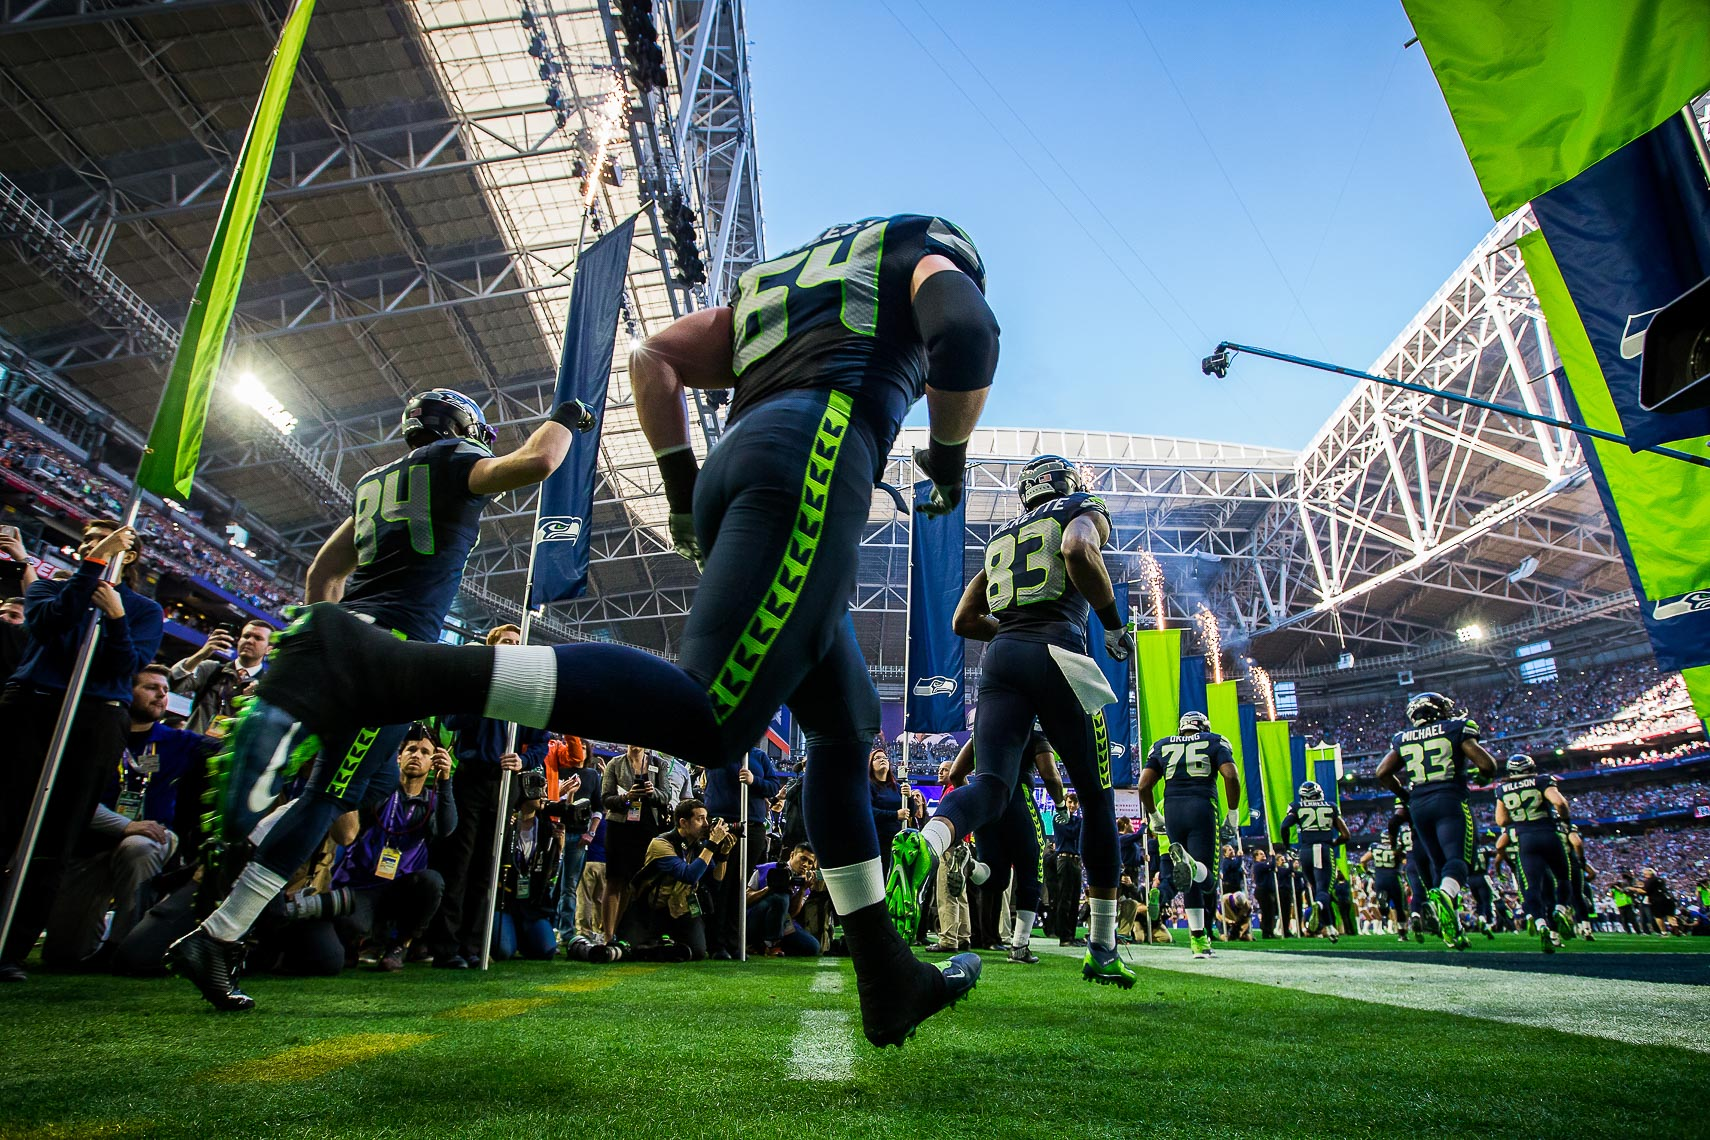 superbowl19  Best Super Bowl XLIX 49 photos between Seattle Seahawks and New England Patriots